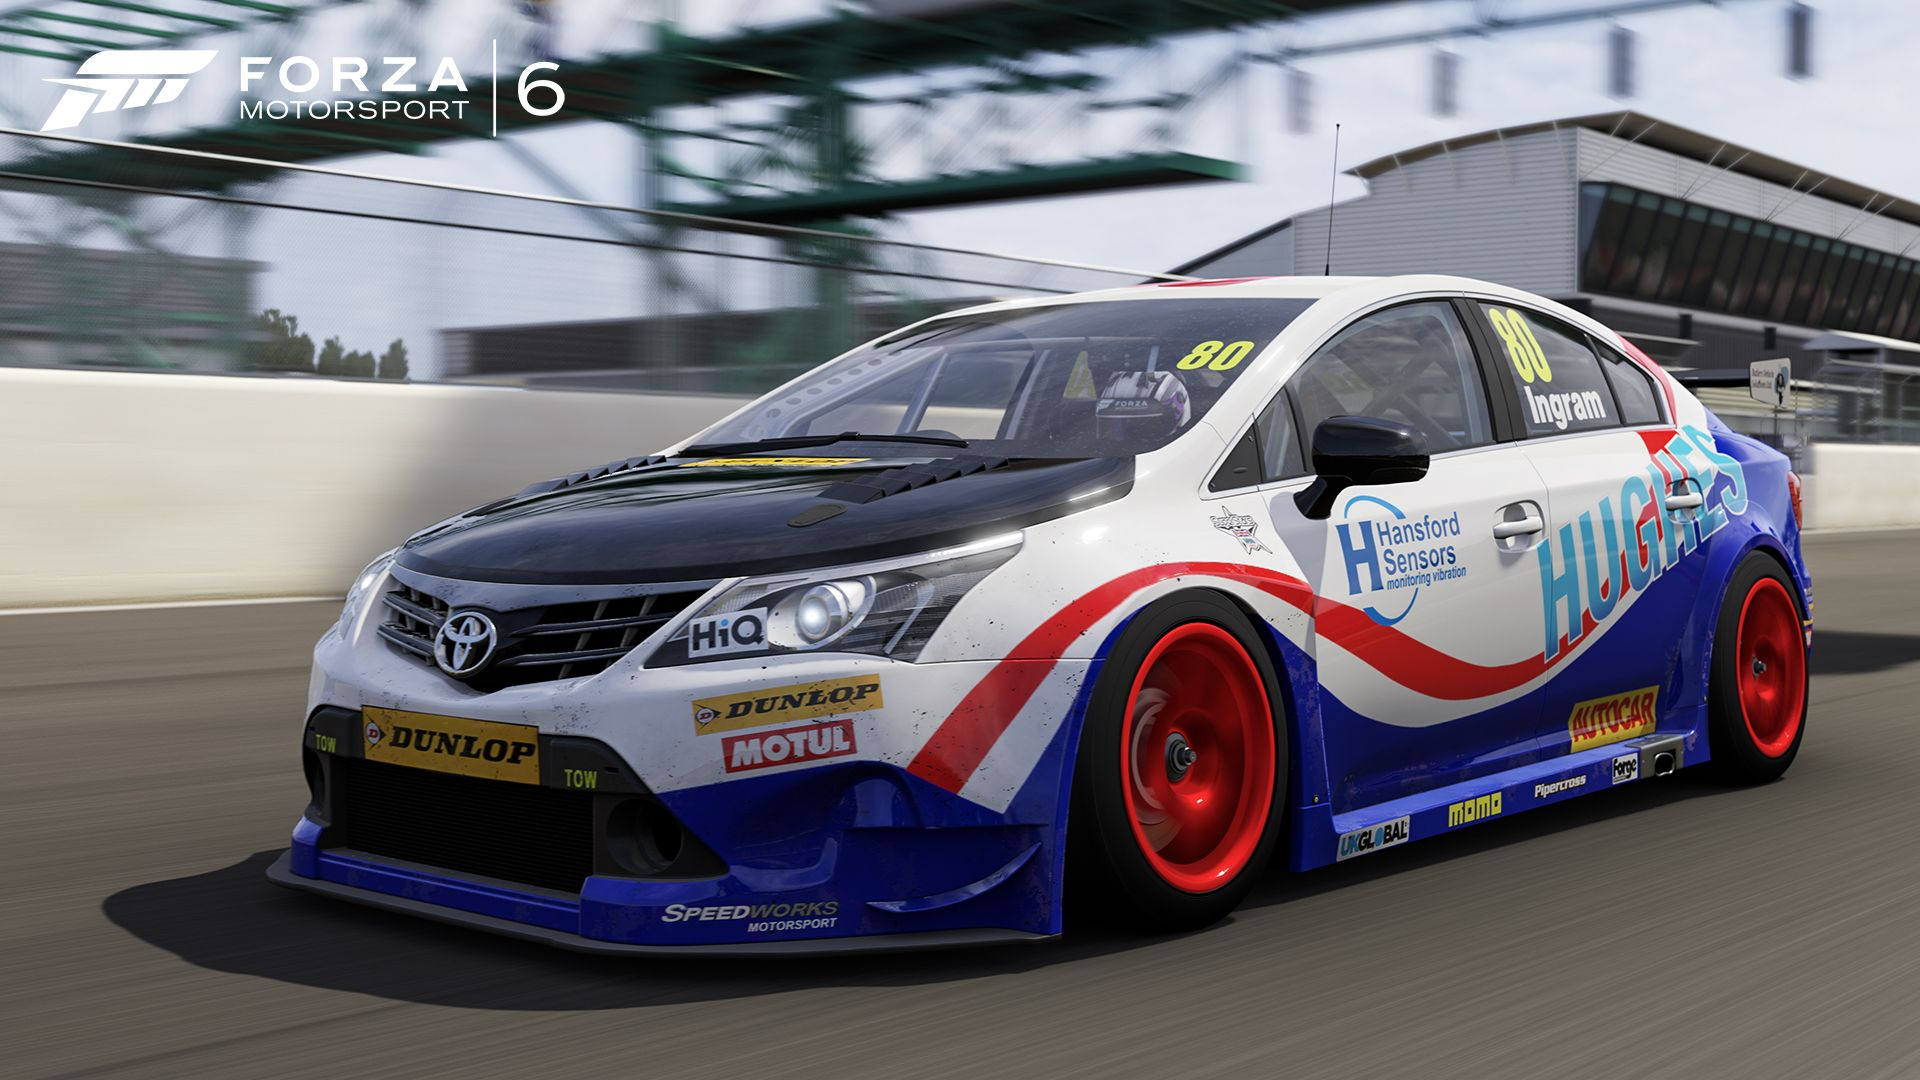 British Cars & More For #ForzaMotorsport6! DETAILS -> http://buff.ly/1gkiacs  #Forza6 @Turn10Studios @ForzaMotorsport